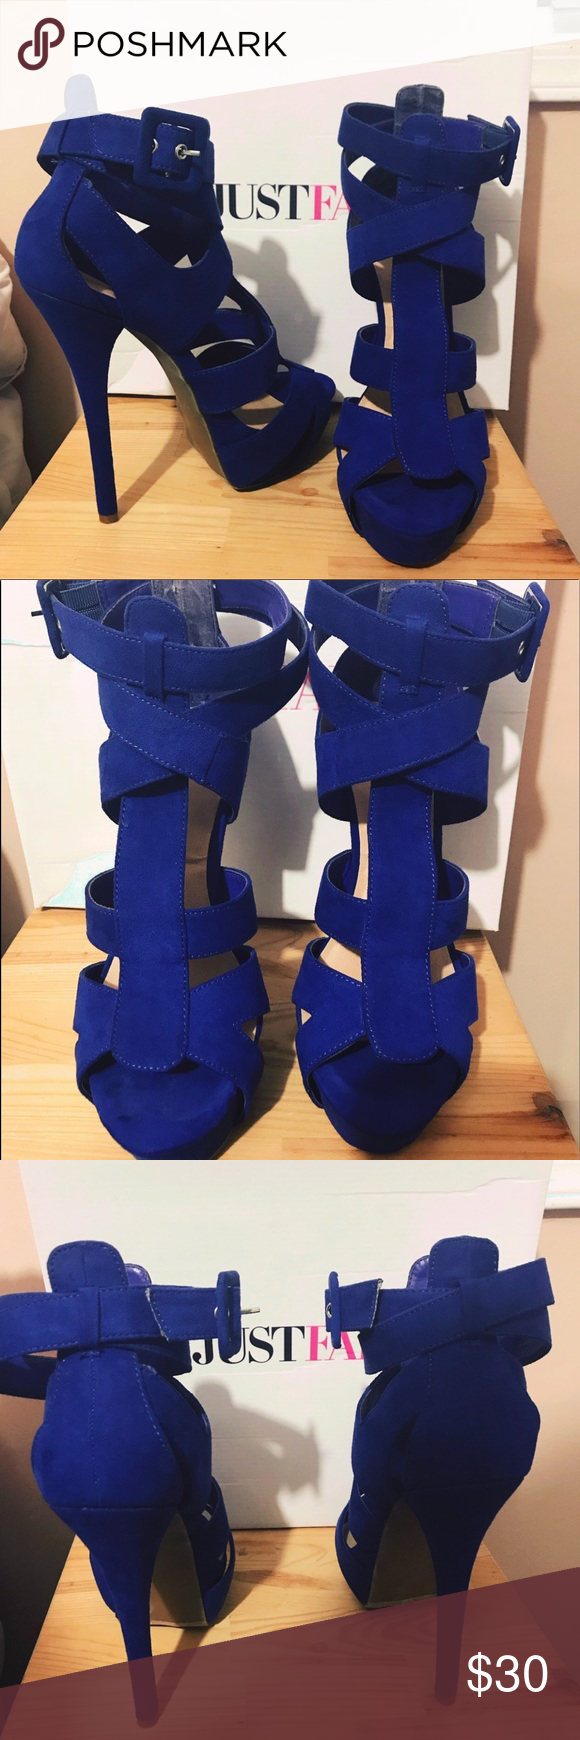 Just Fab brand • Violet heels • Brand new !! Just Fab brand • NEVER WORN • brand new with box • deep violet color • buckle on side • very high heel • size 9. TRADES WELCOME NWT JustFab Shoes Heels